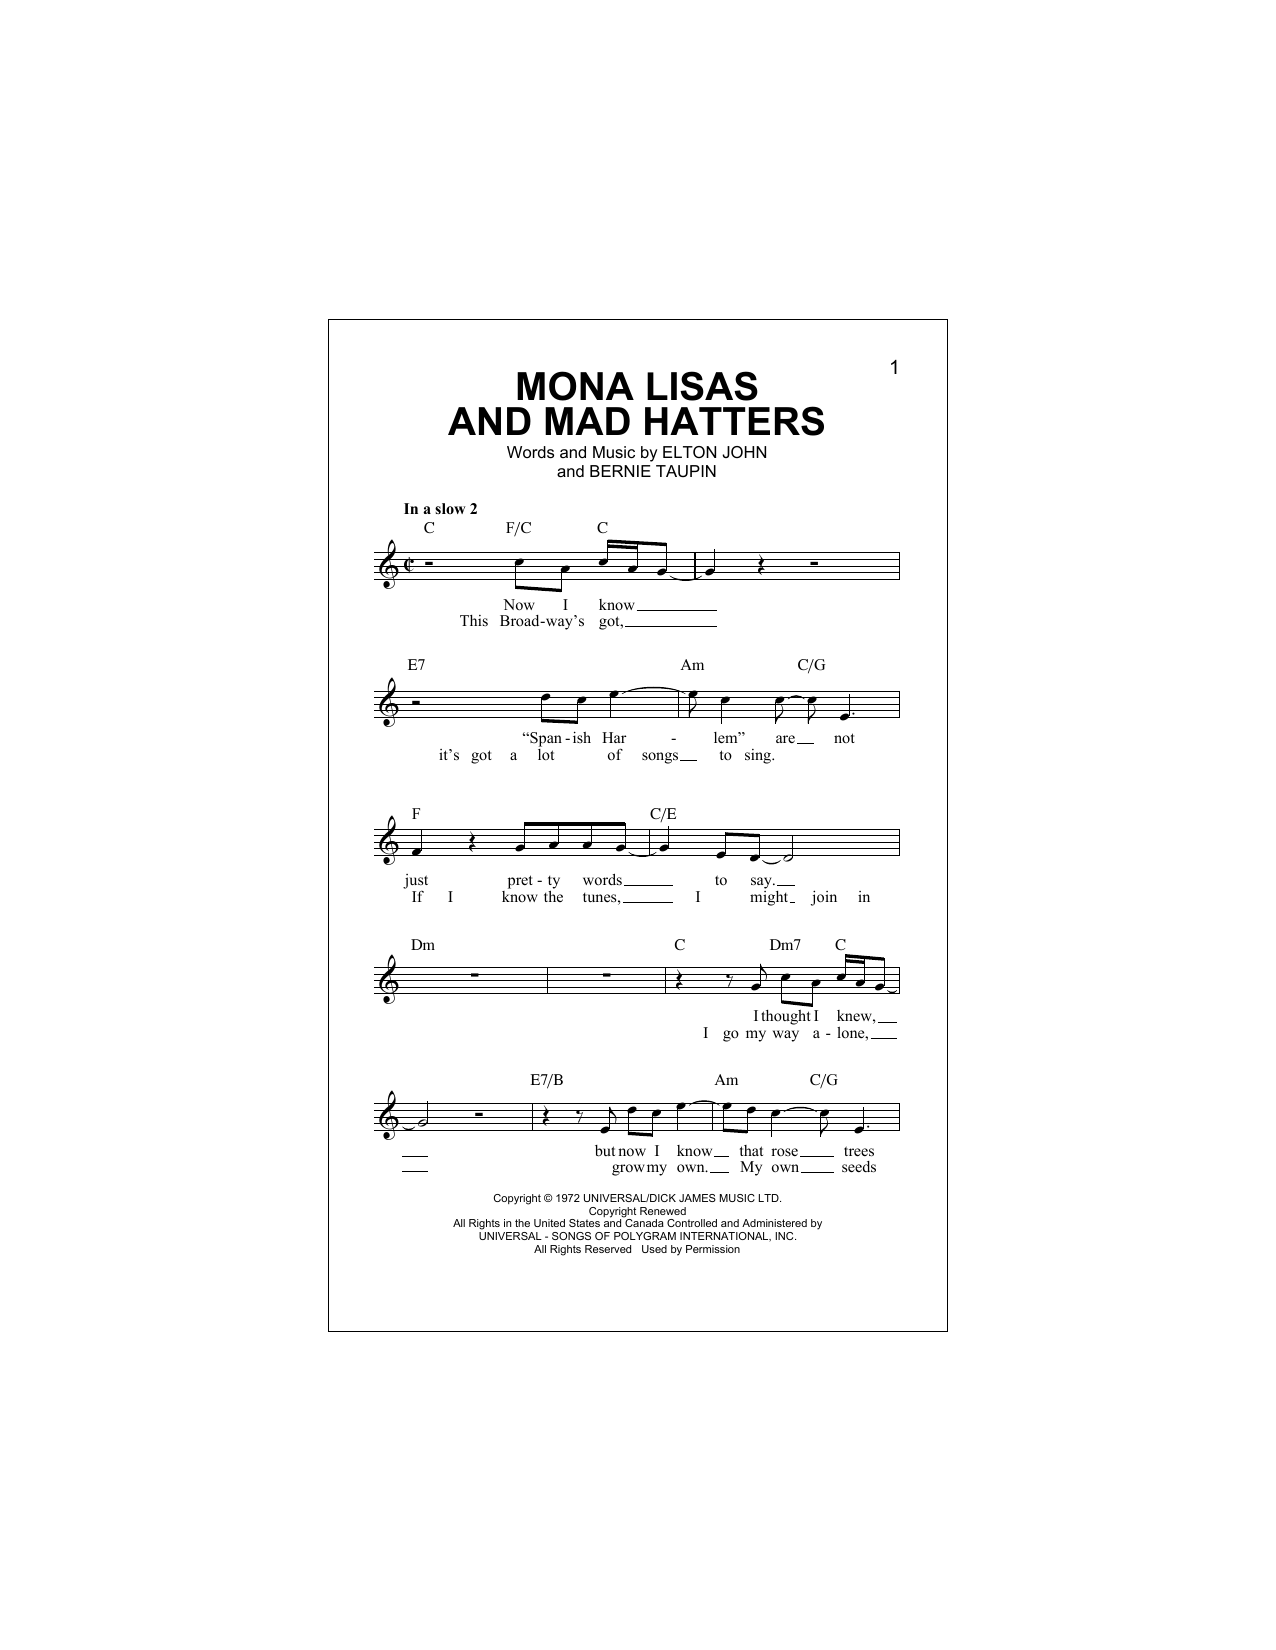 Mona Lisas And Mad Hatters Sheet Music